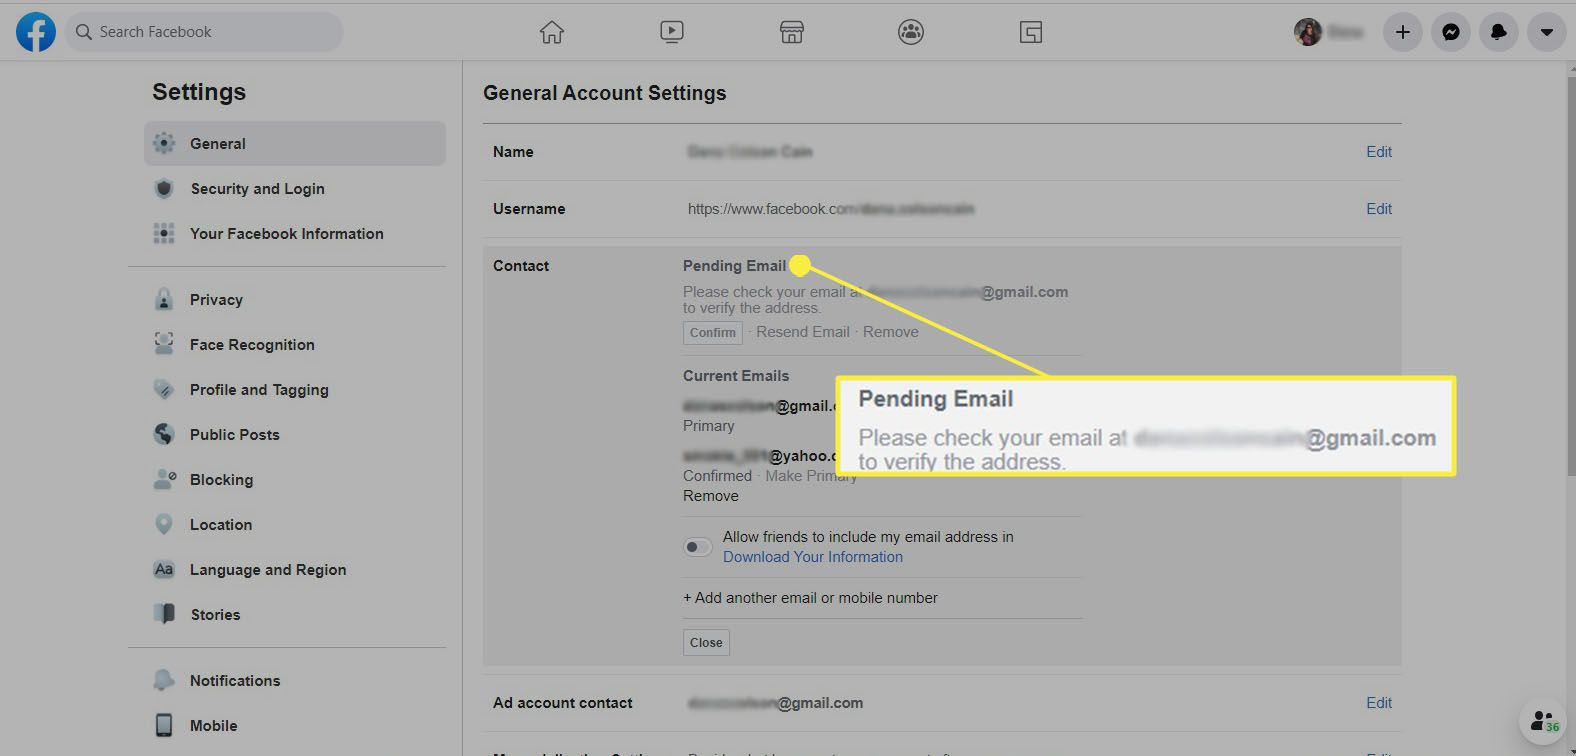 Facebook - message telling you to check your email and verify address